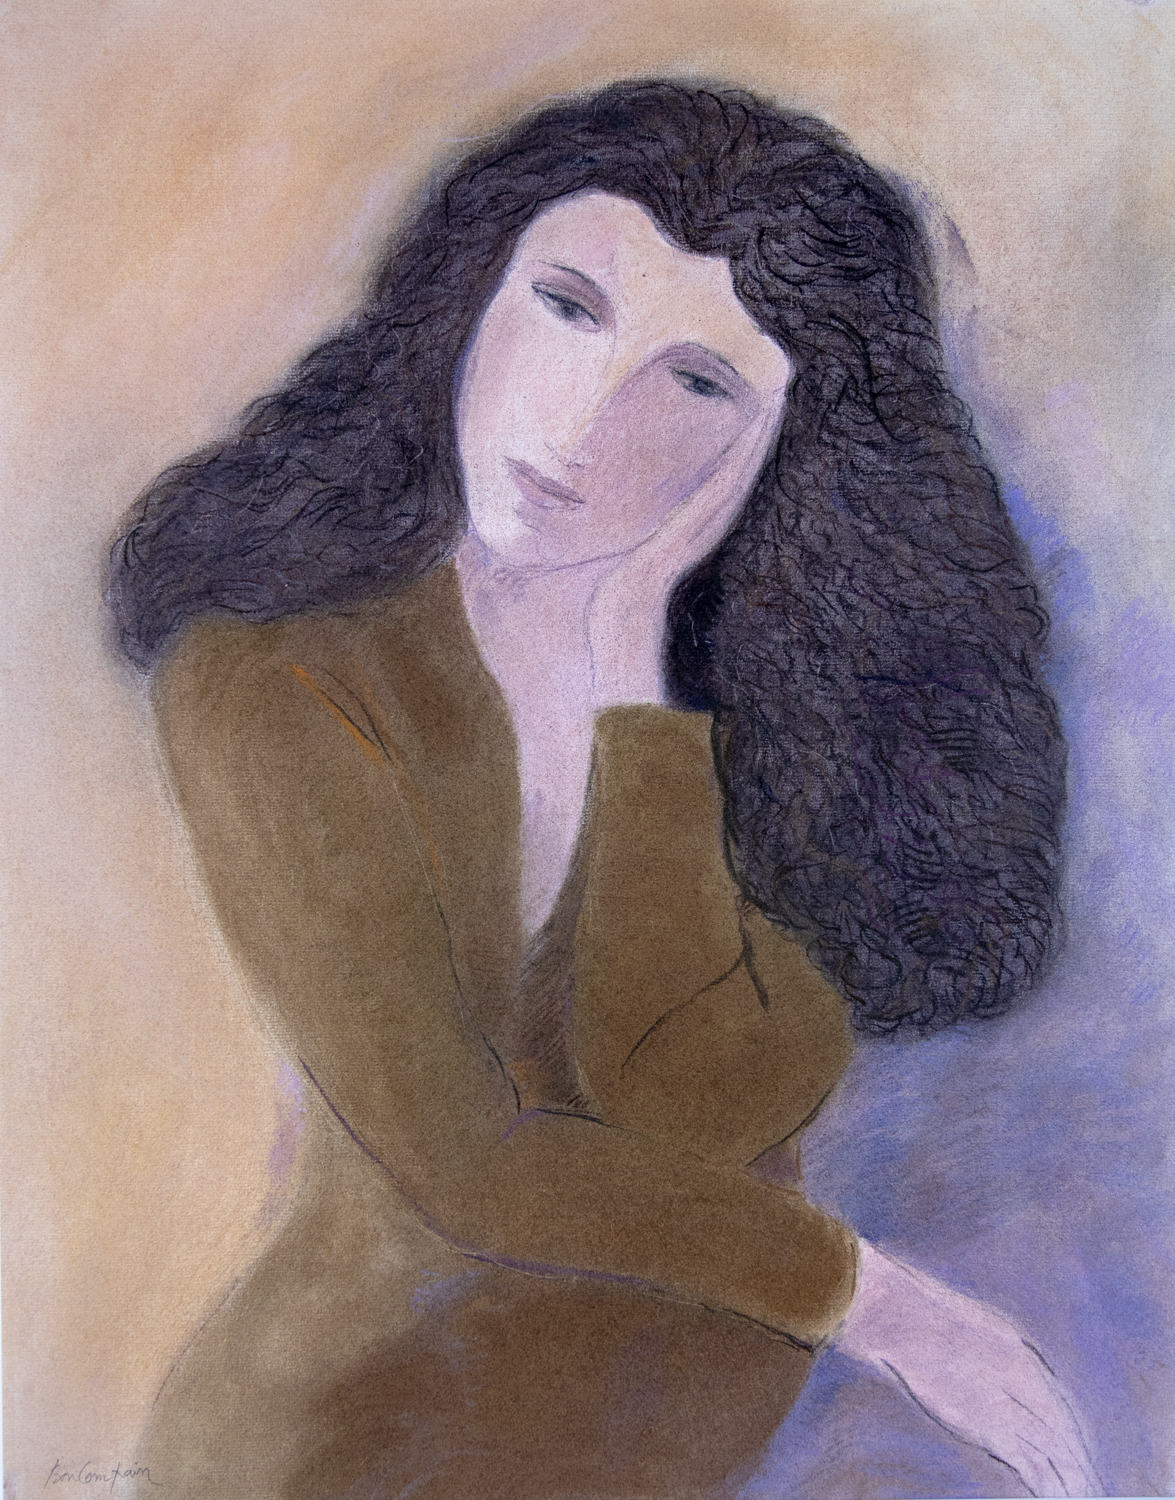 Sophie, pastel on paper, 25.5 x 20 in. (65 x 50 cm), 1995